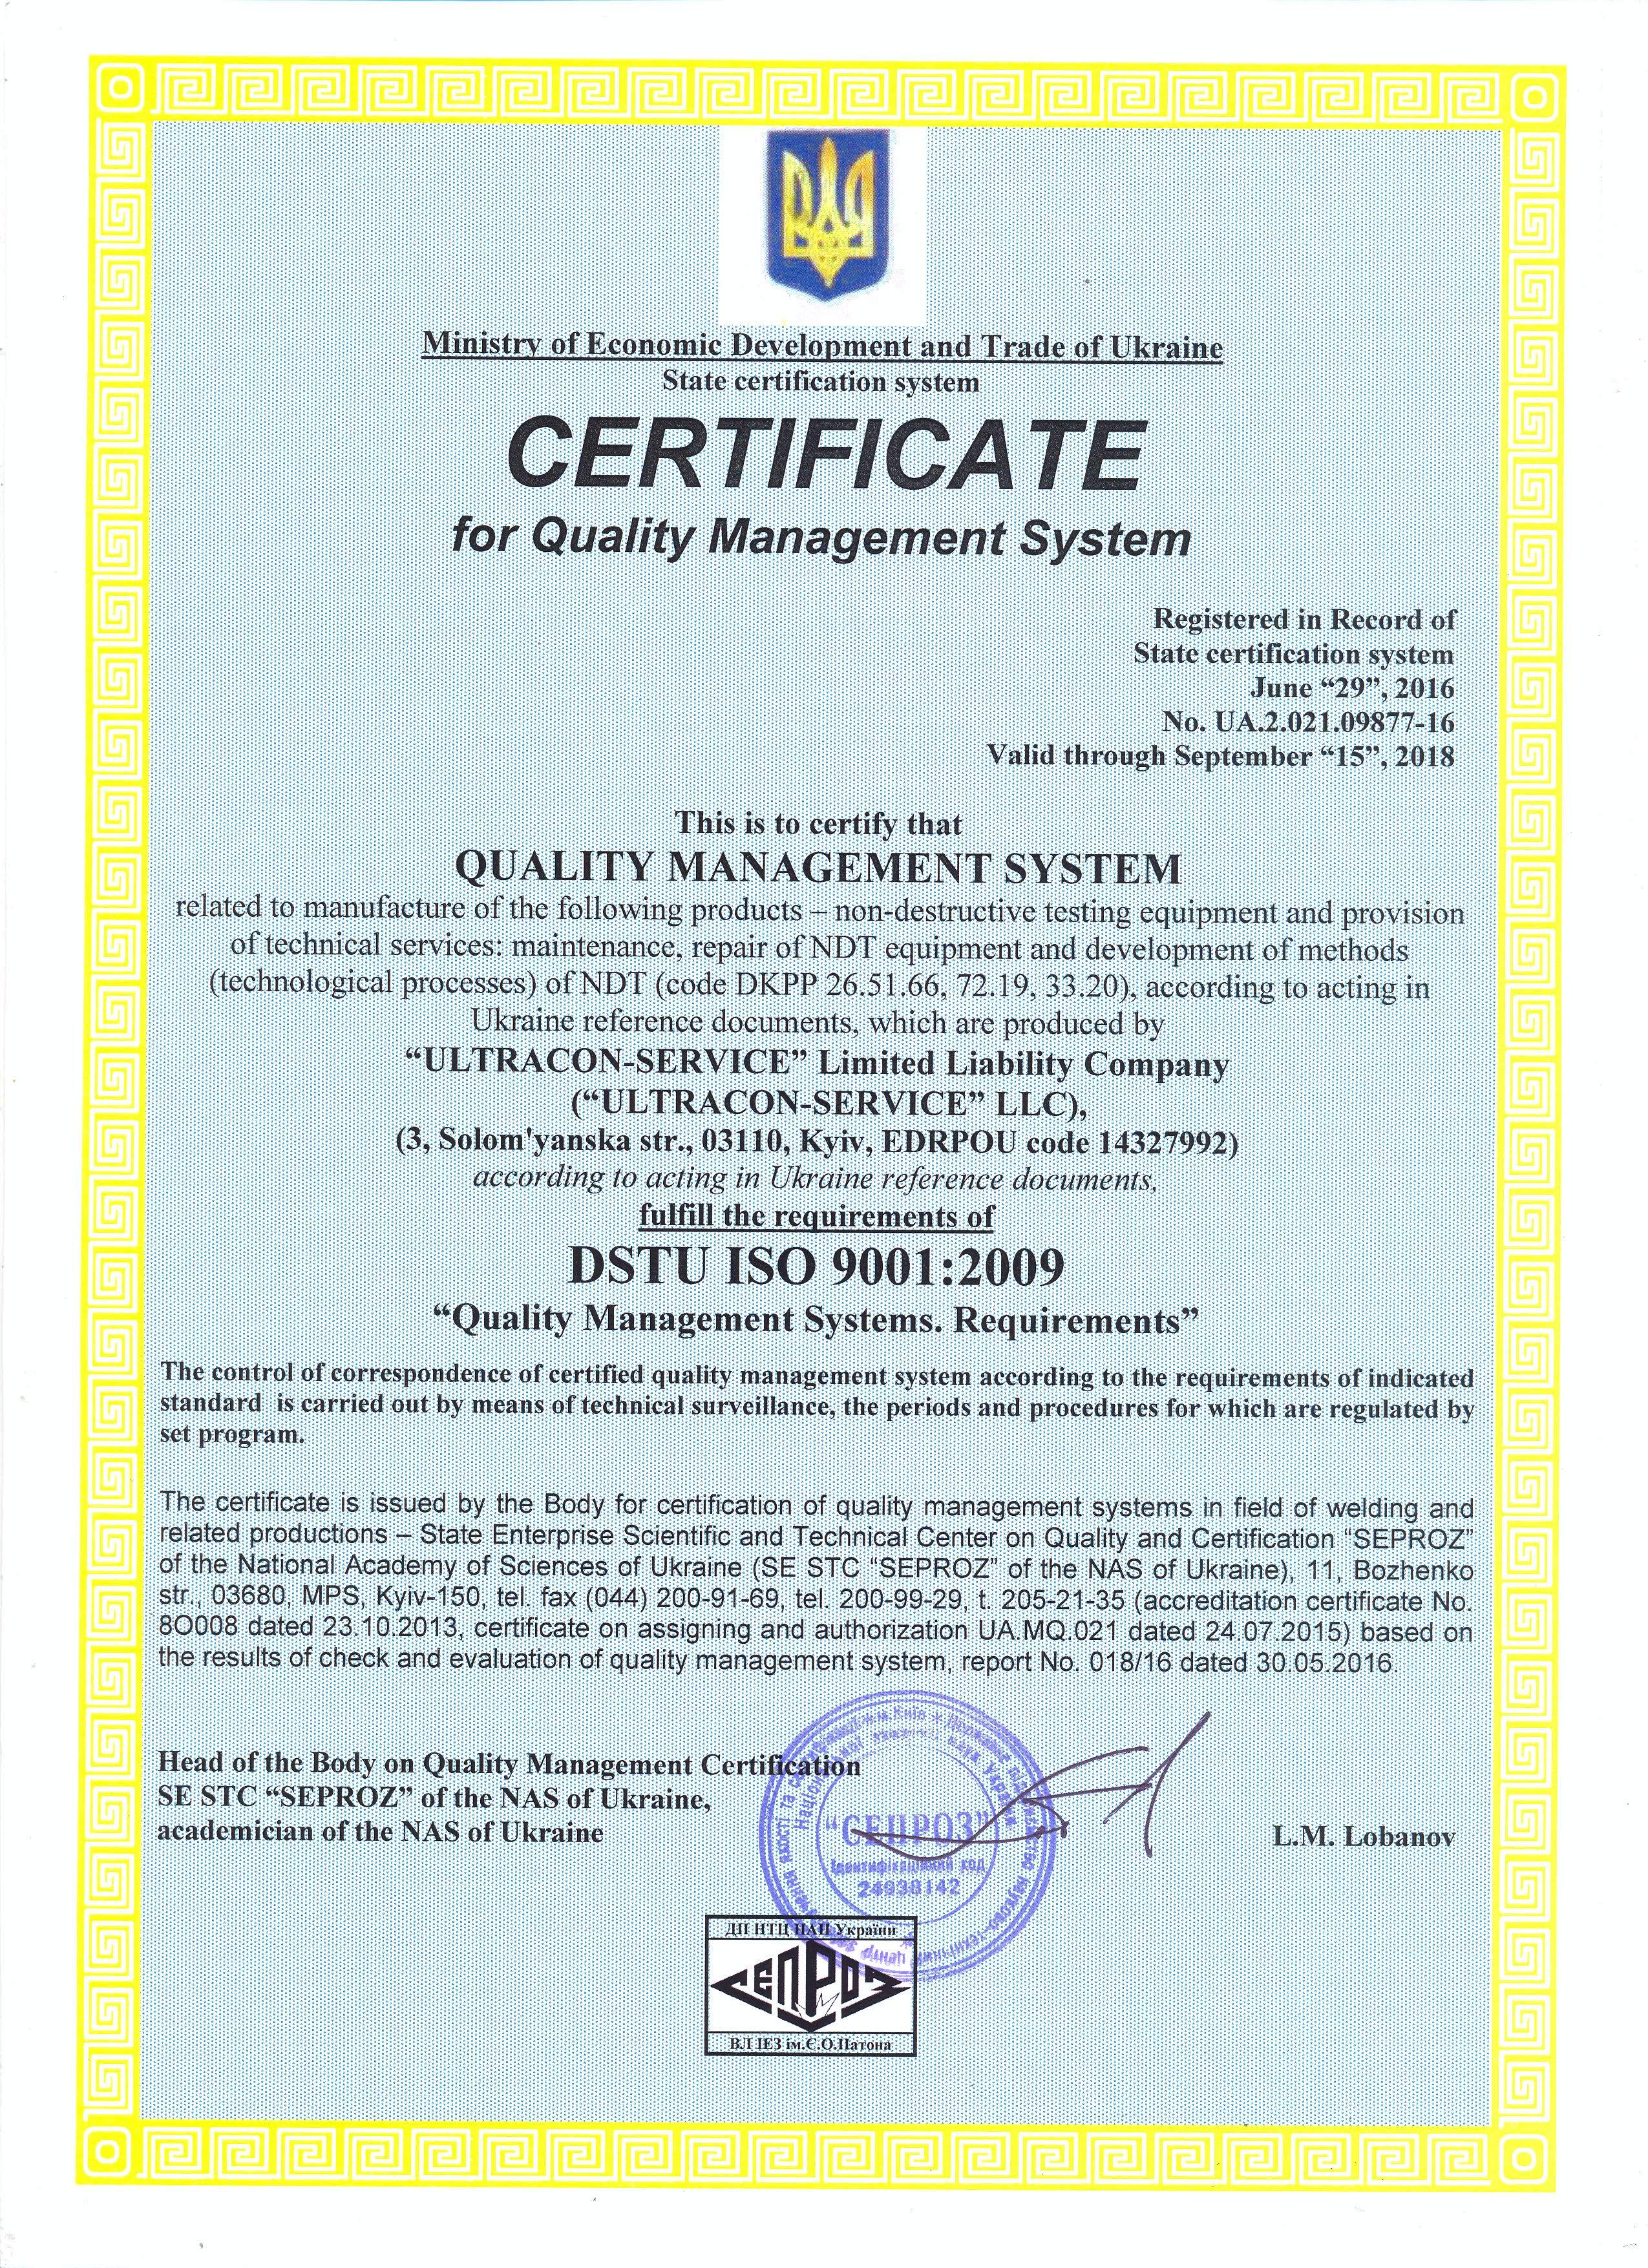 Sertificate for quality control system